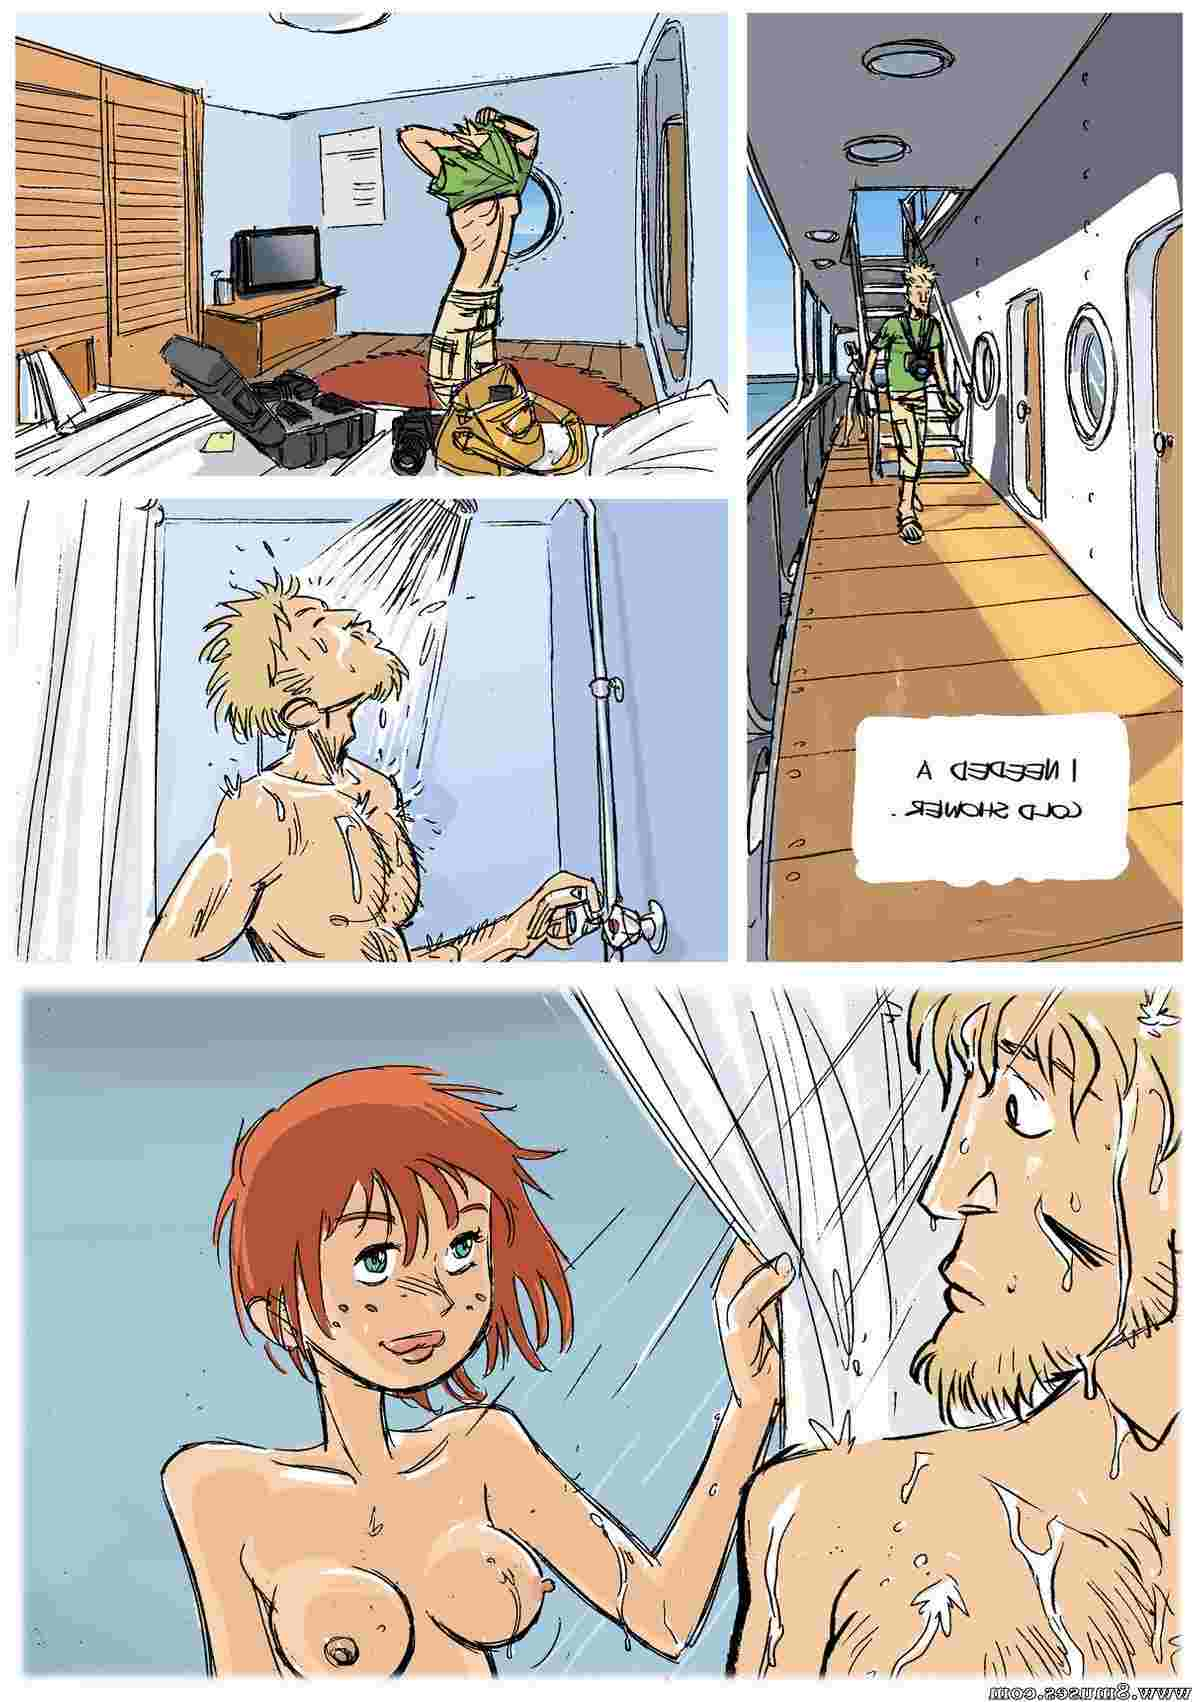 Slipshine-Comics/Lust-Boat Lust_Boat__8muses_-_Sex_and_Porn_Comics_7.jpg